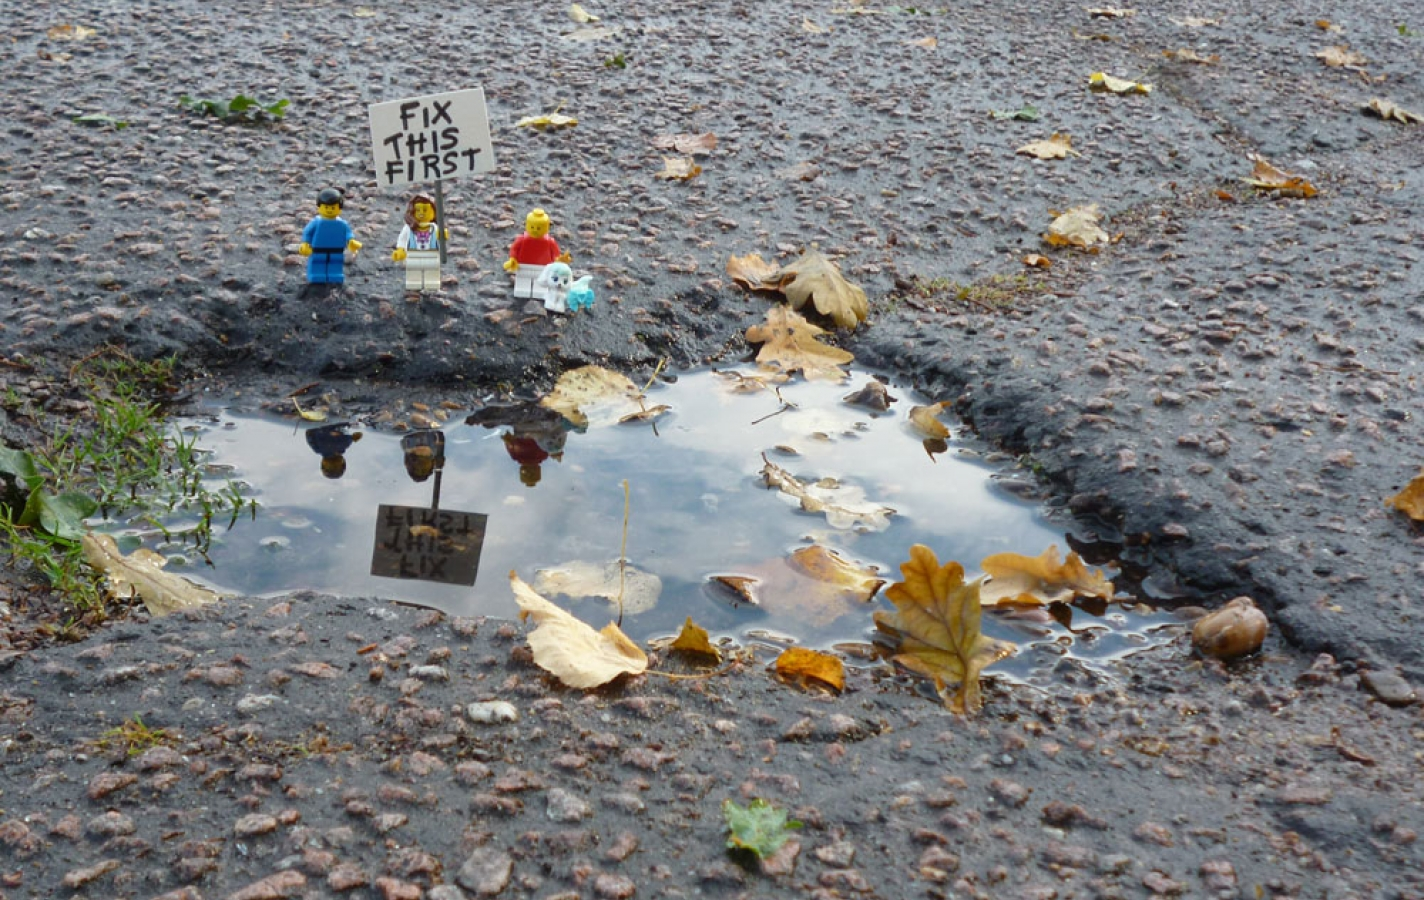 Lego figures by pothole with placard reading 'Fix this first'